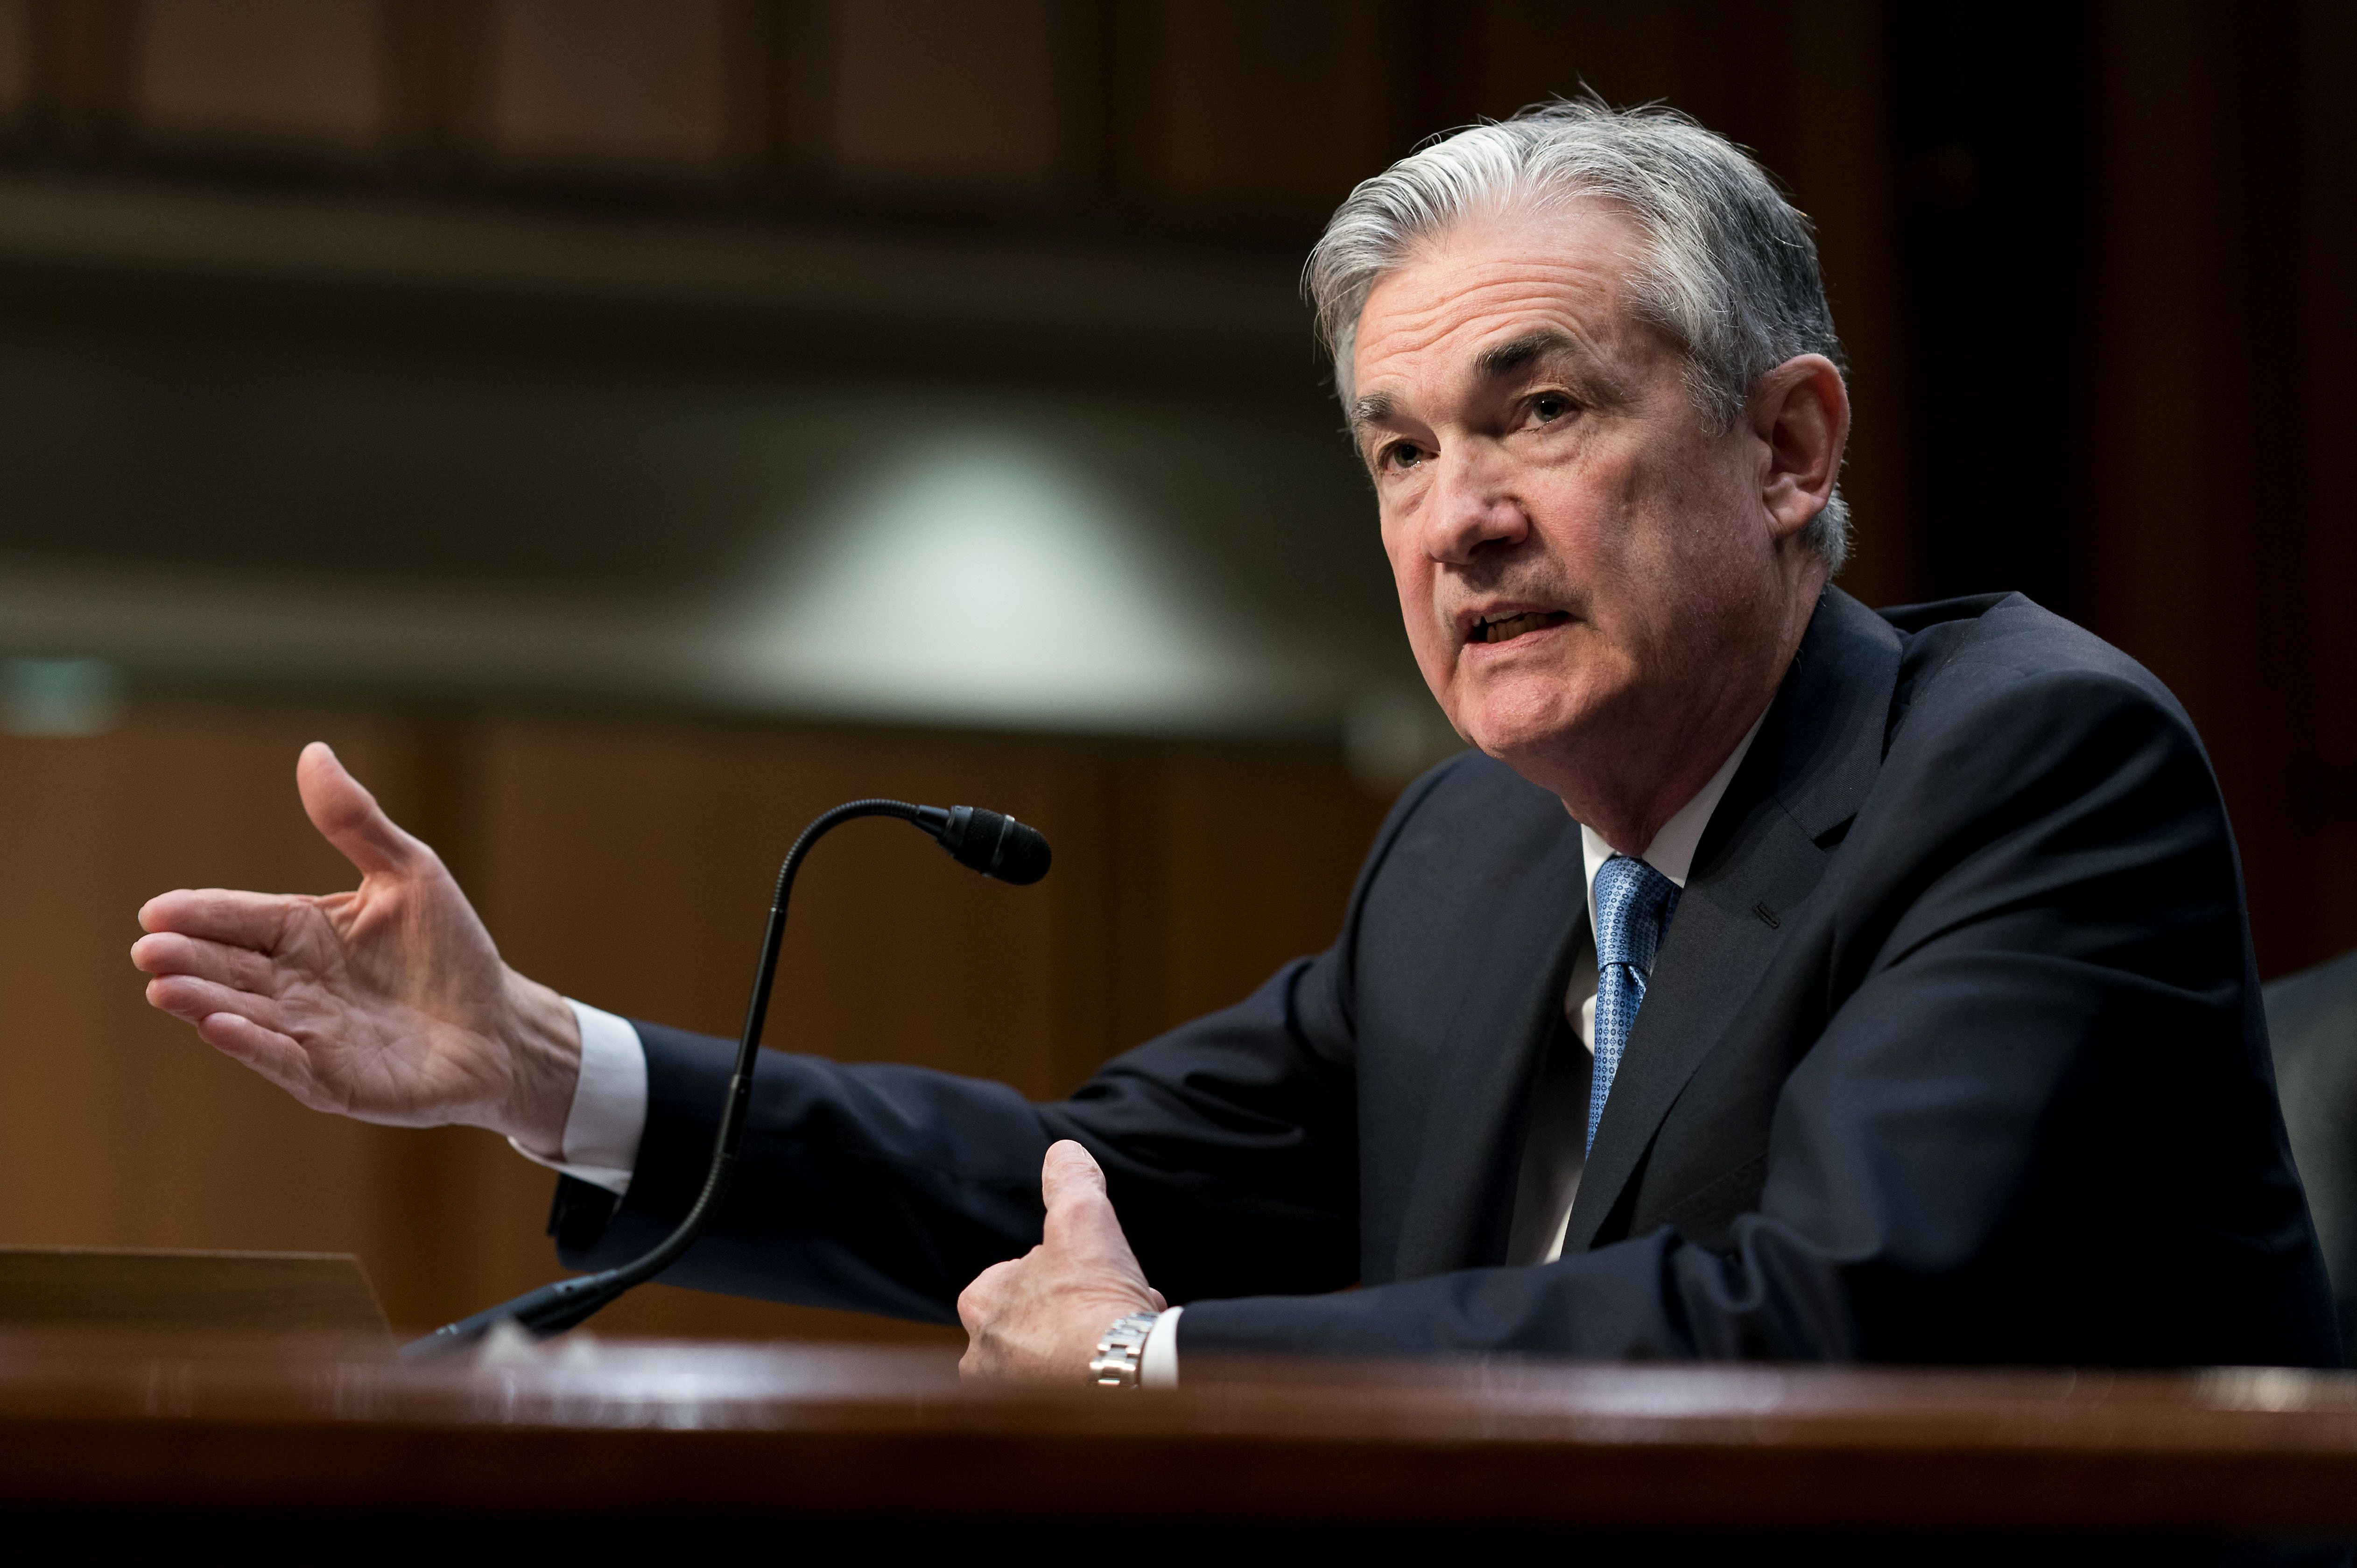 Jerome Powell, President Donald Trump's nominee to become Federal Reserve chairman, testifies before the Senate Banking Commi